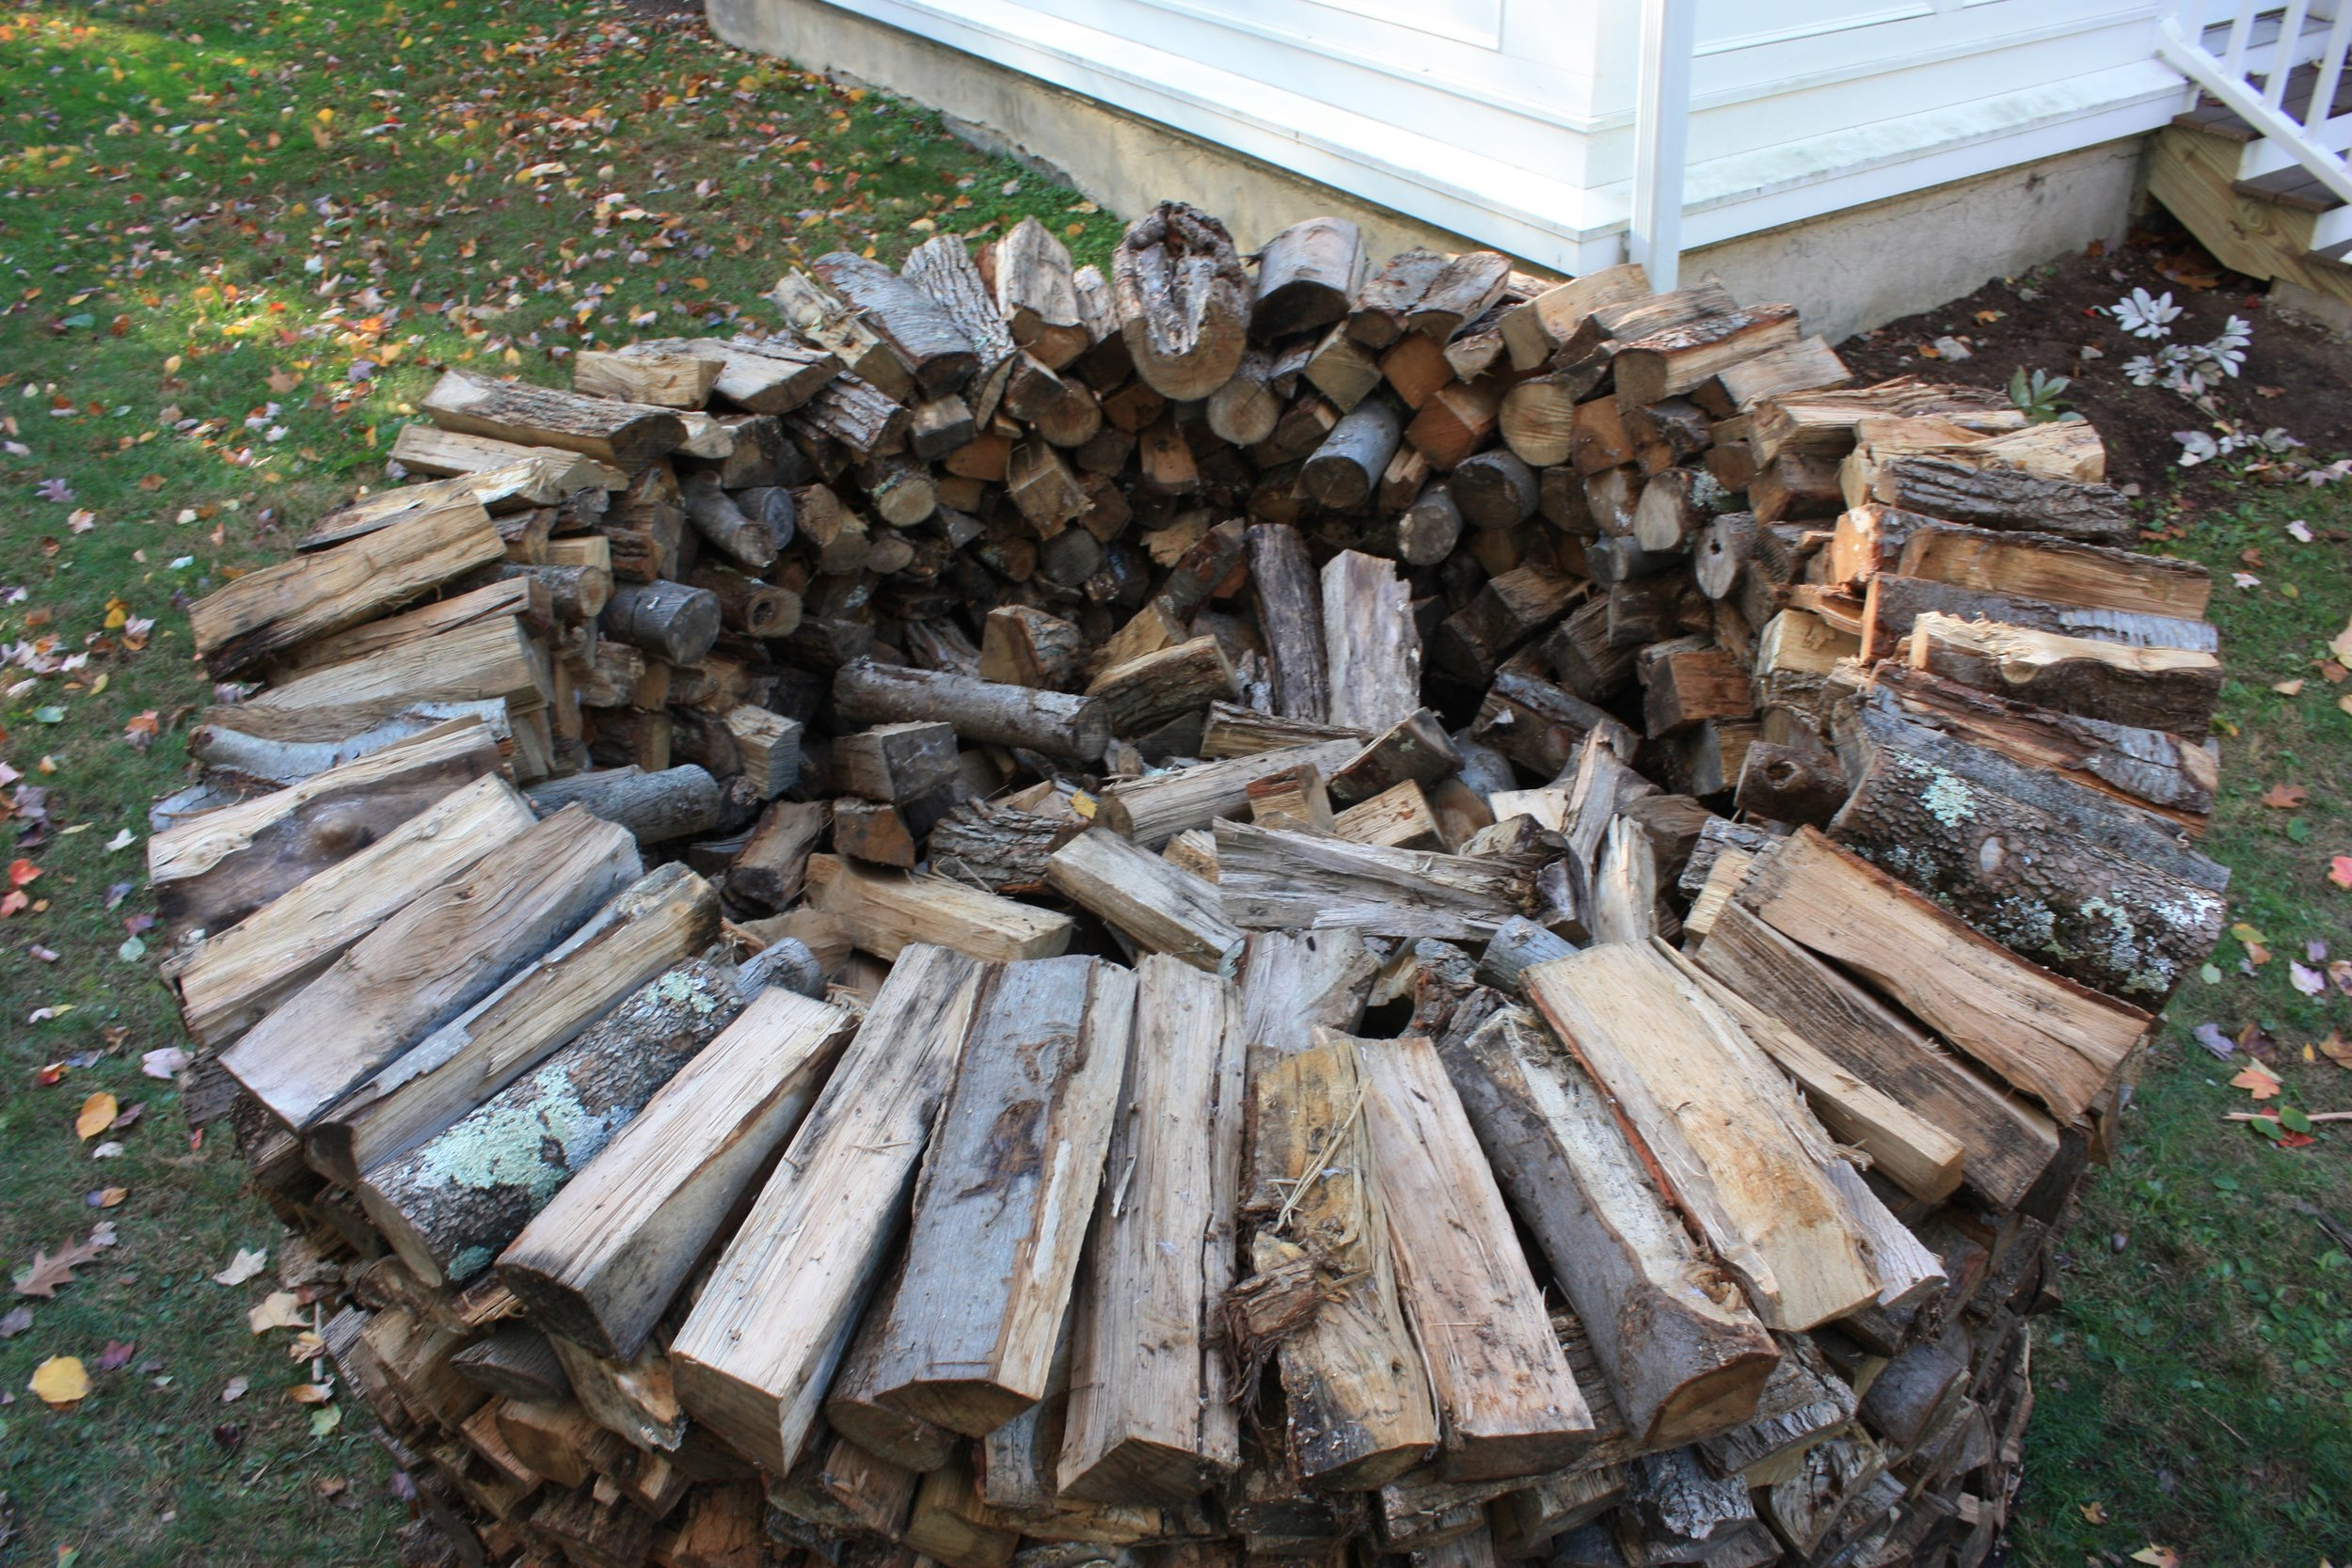 How to stack a firewood pile to build a Holz Hausen